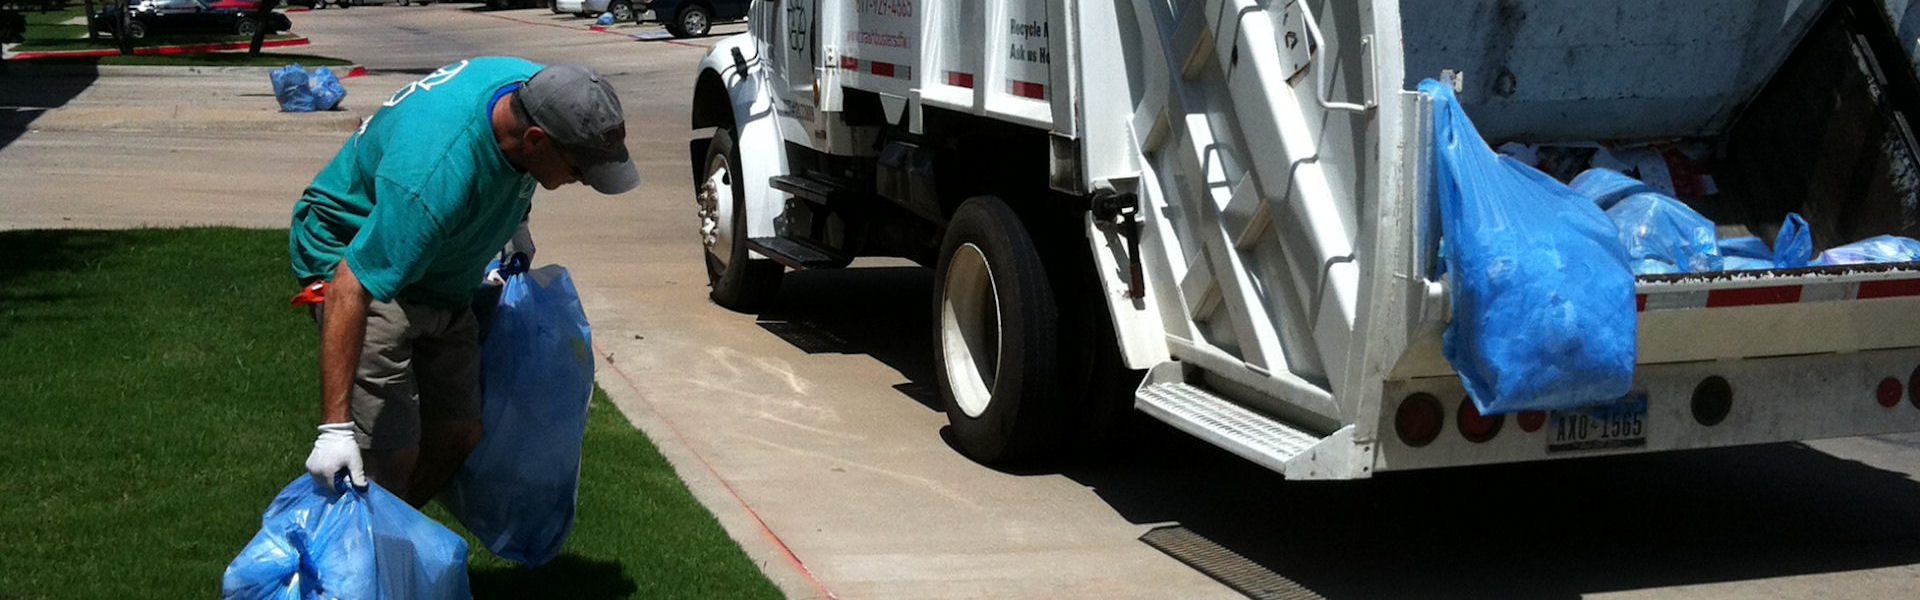 TRASHBUSTERS Disposal & Recycling offers the best valet trash service and the most resident-accessible Blue Bag Recycling program anywhere! Serving multi-family, apartment and condominium communities in the Dallas, Fort Worth, Austin, San Antonio and Houston areas.